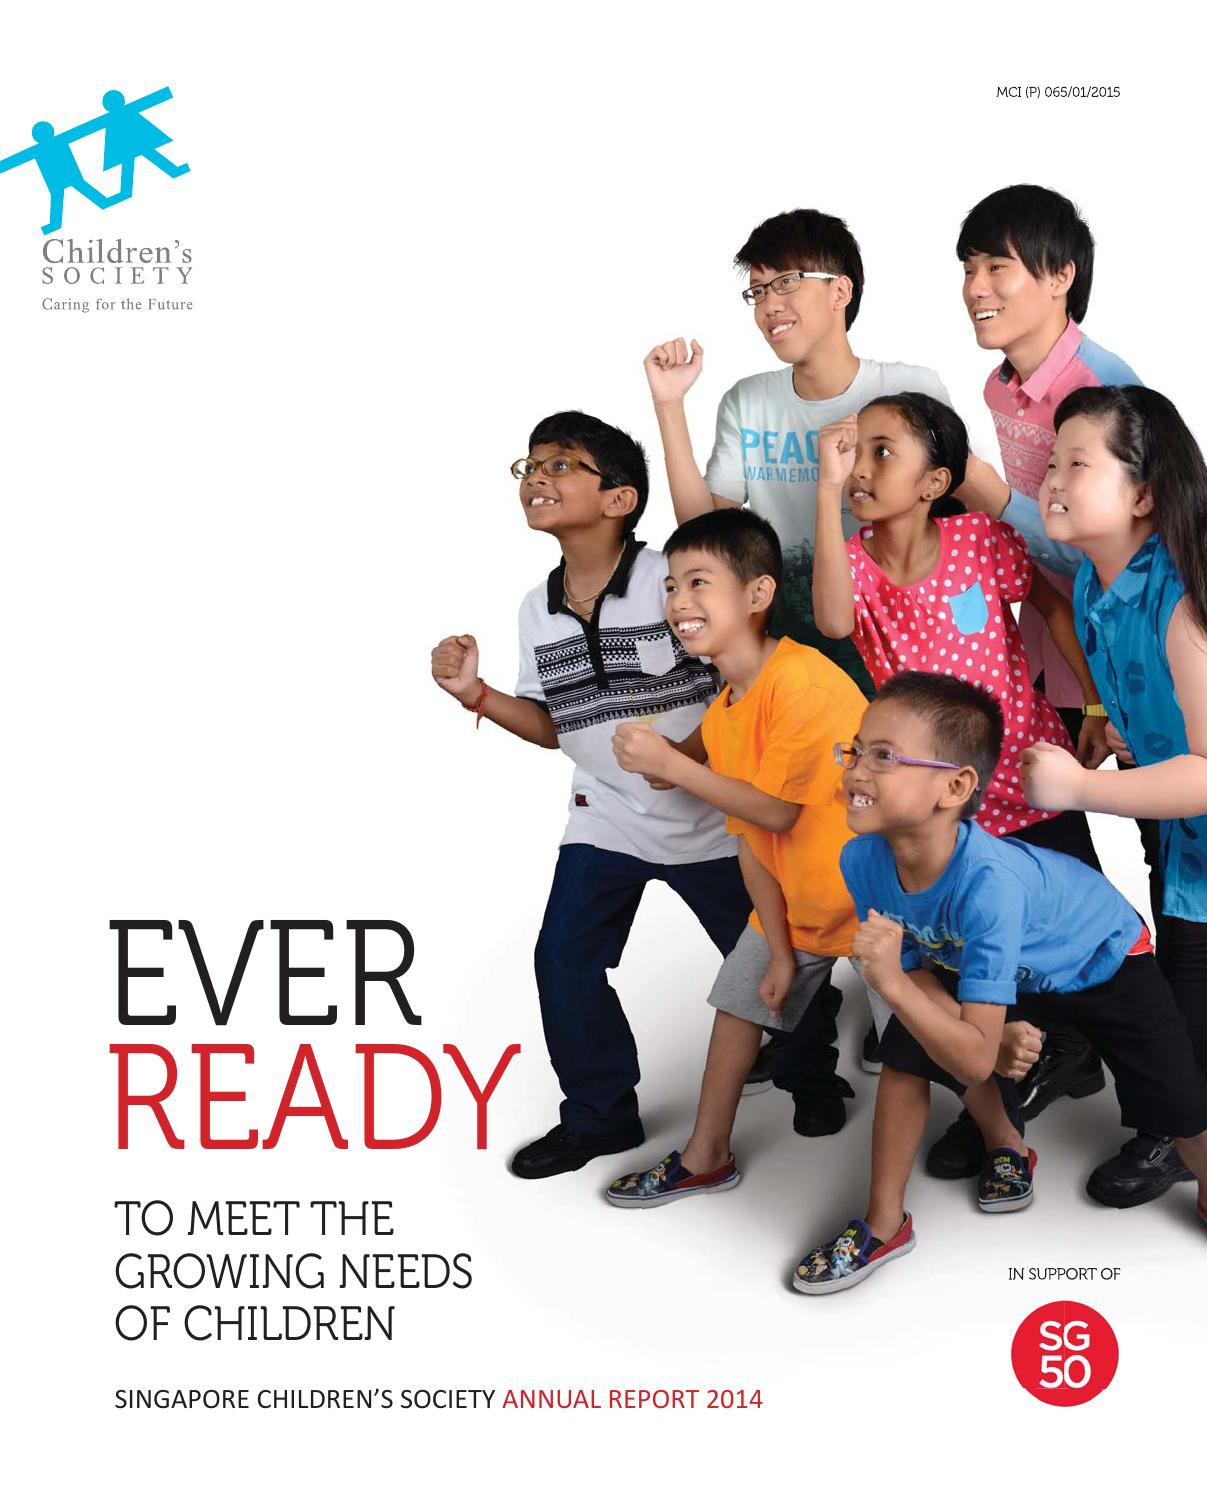 Yun hwa investments for kids bakers brothers investments